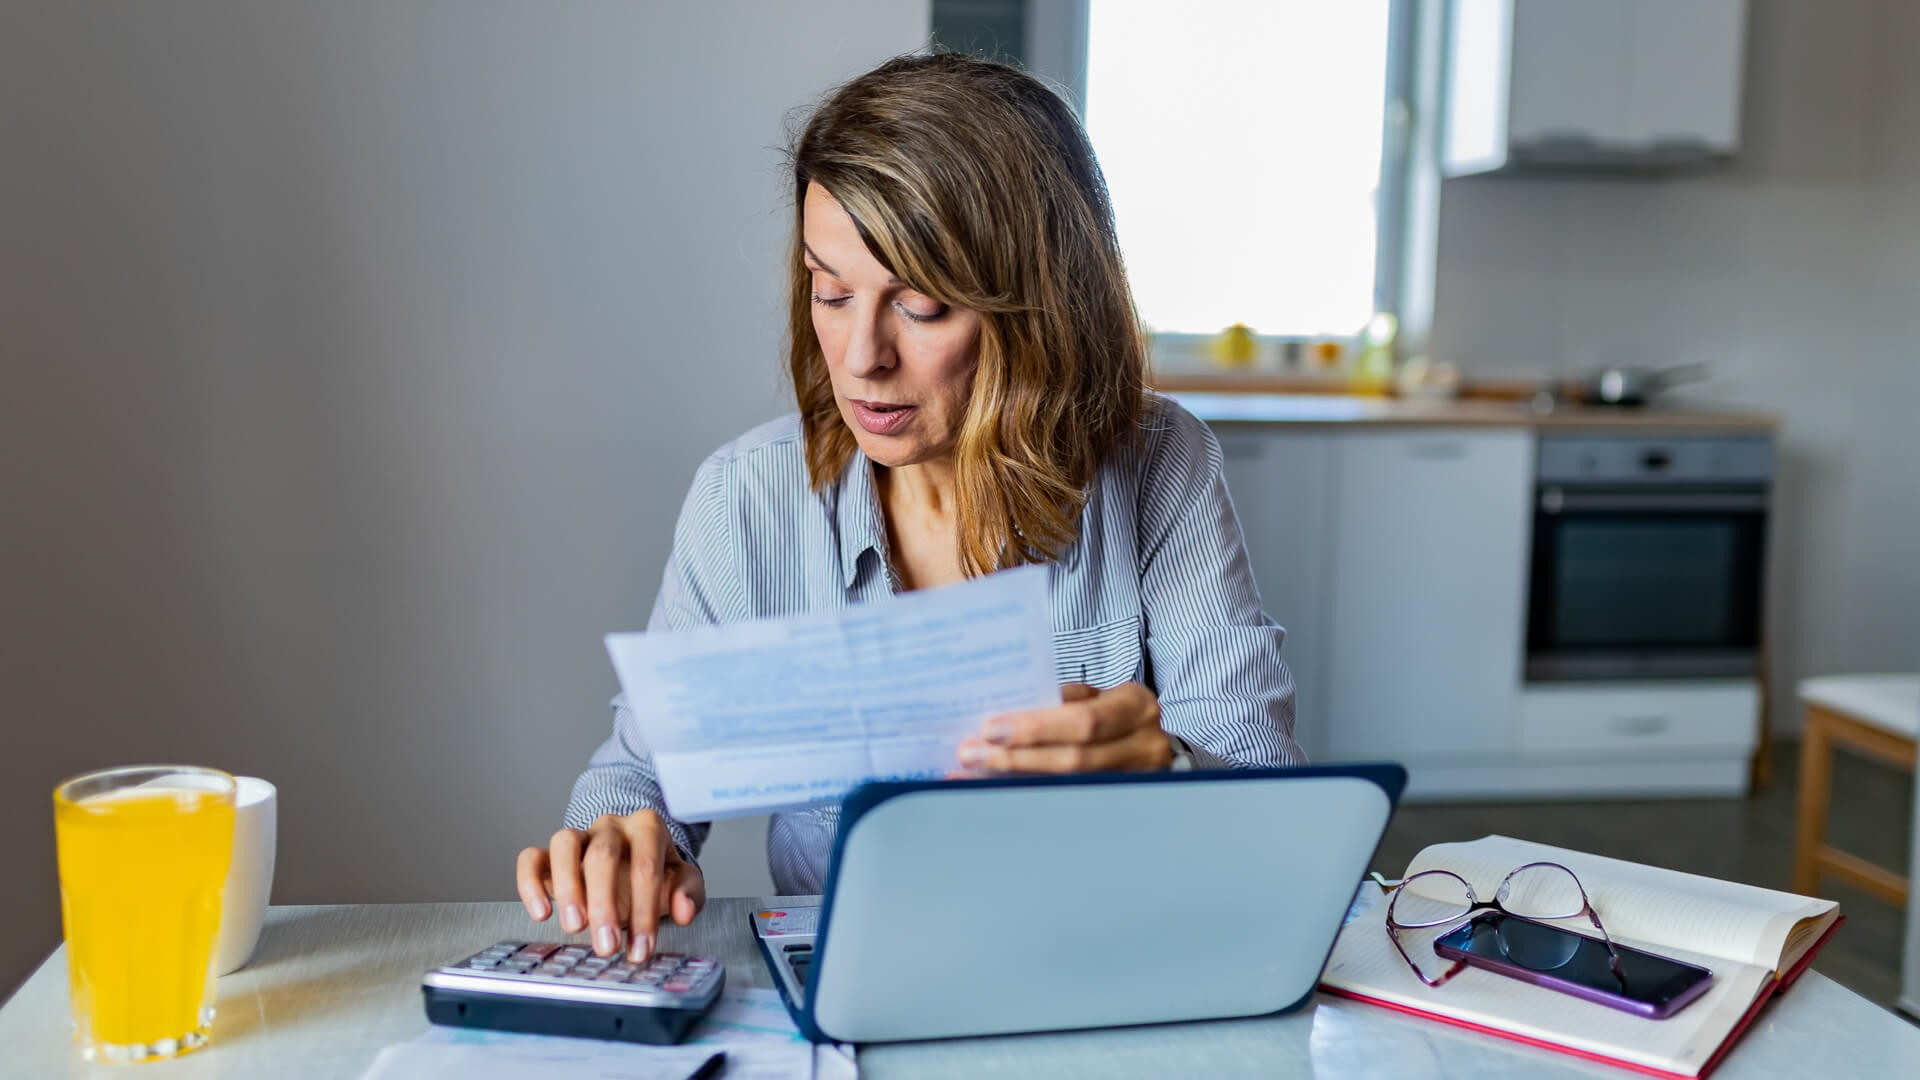 Senior Woman Calculating Domestic Expenses Making Notes, Surrounded With Papers and Gadgets, Sitting at Dining Table.